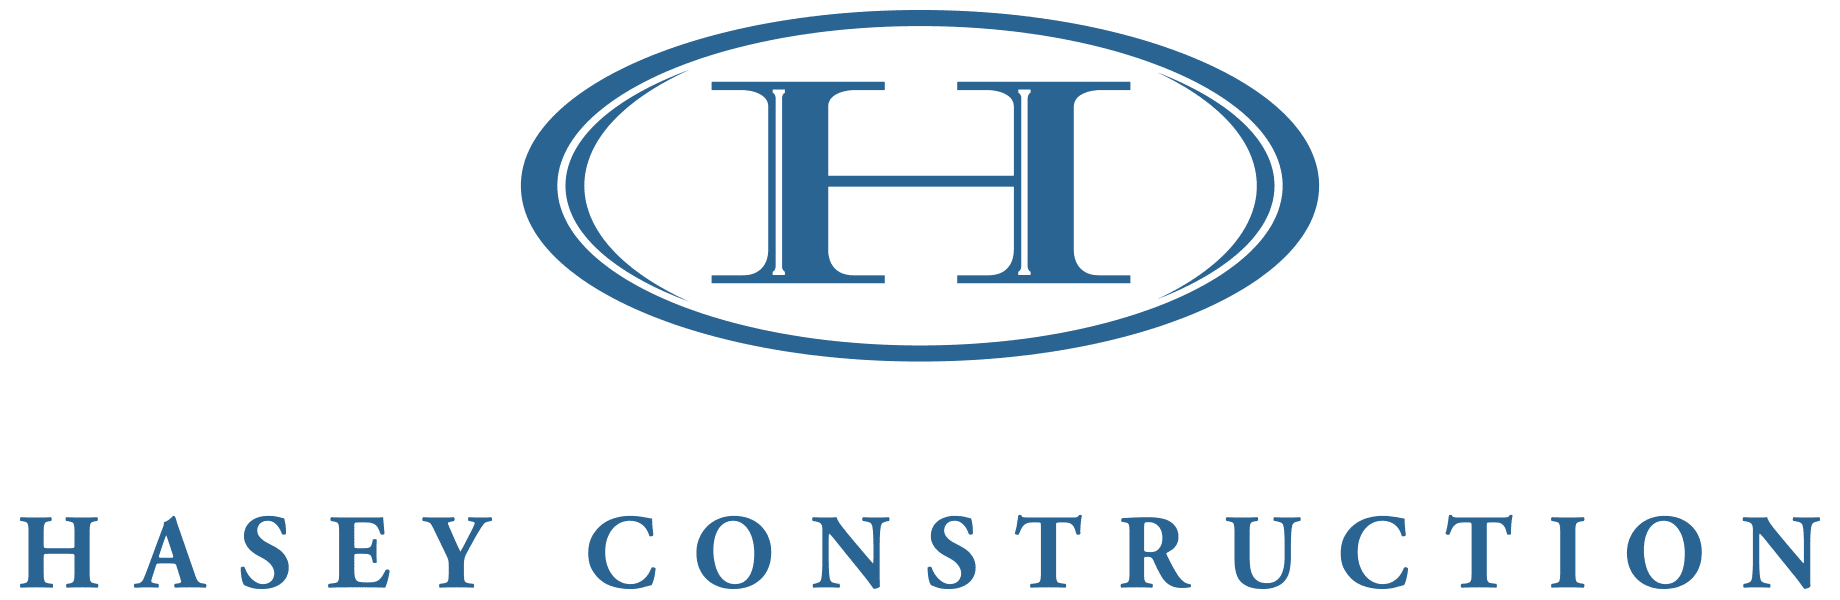 Hasey Construction